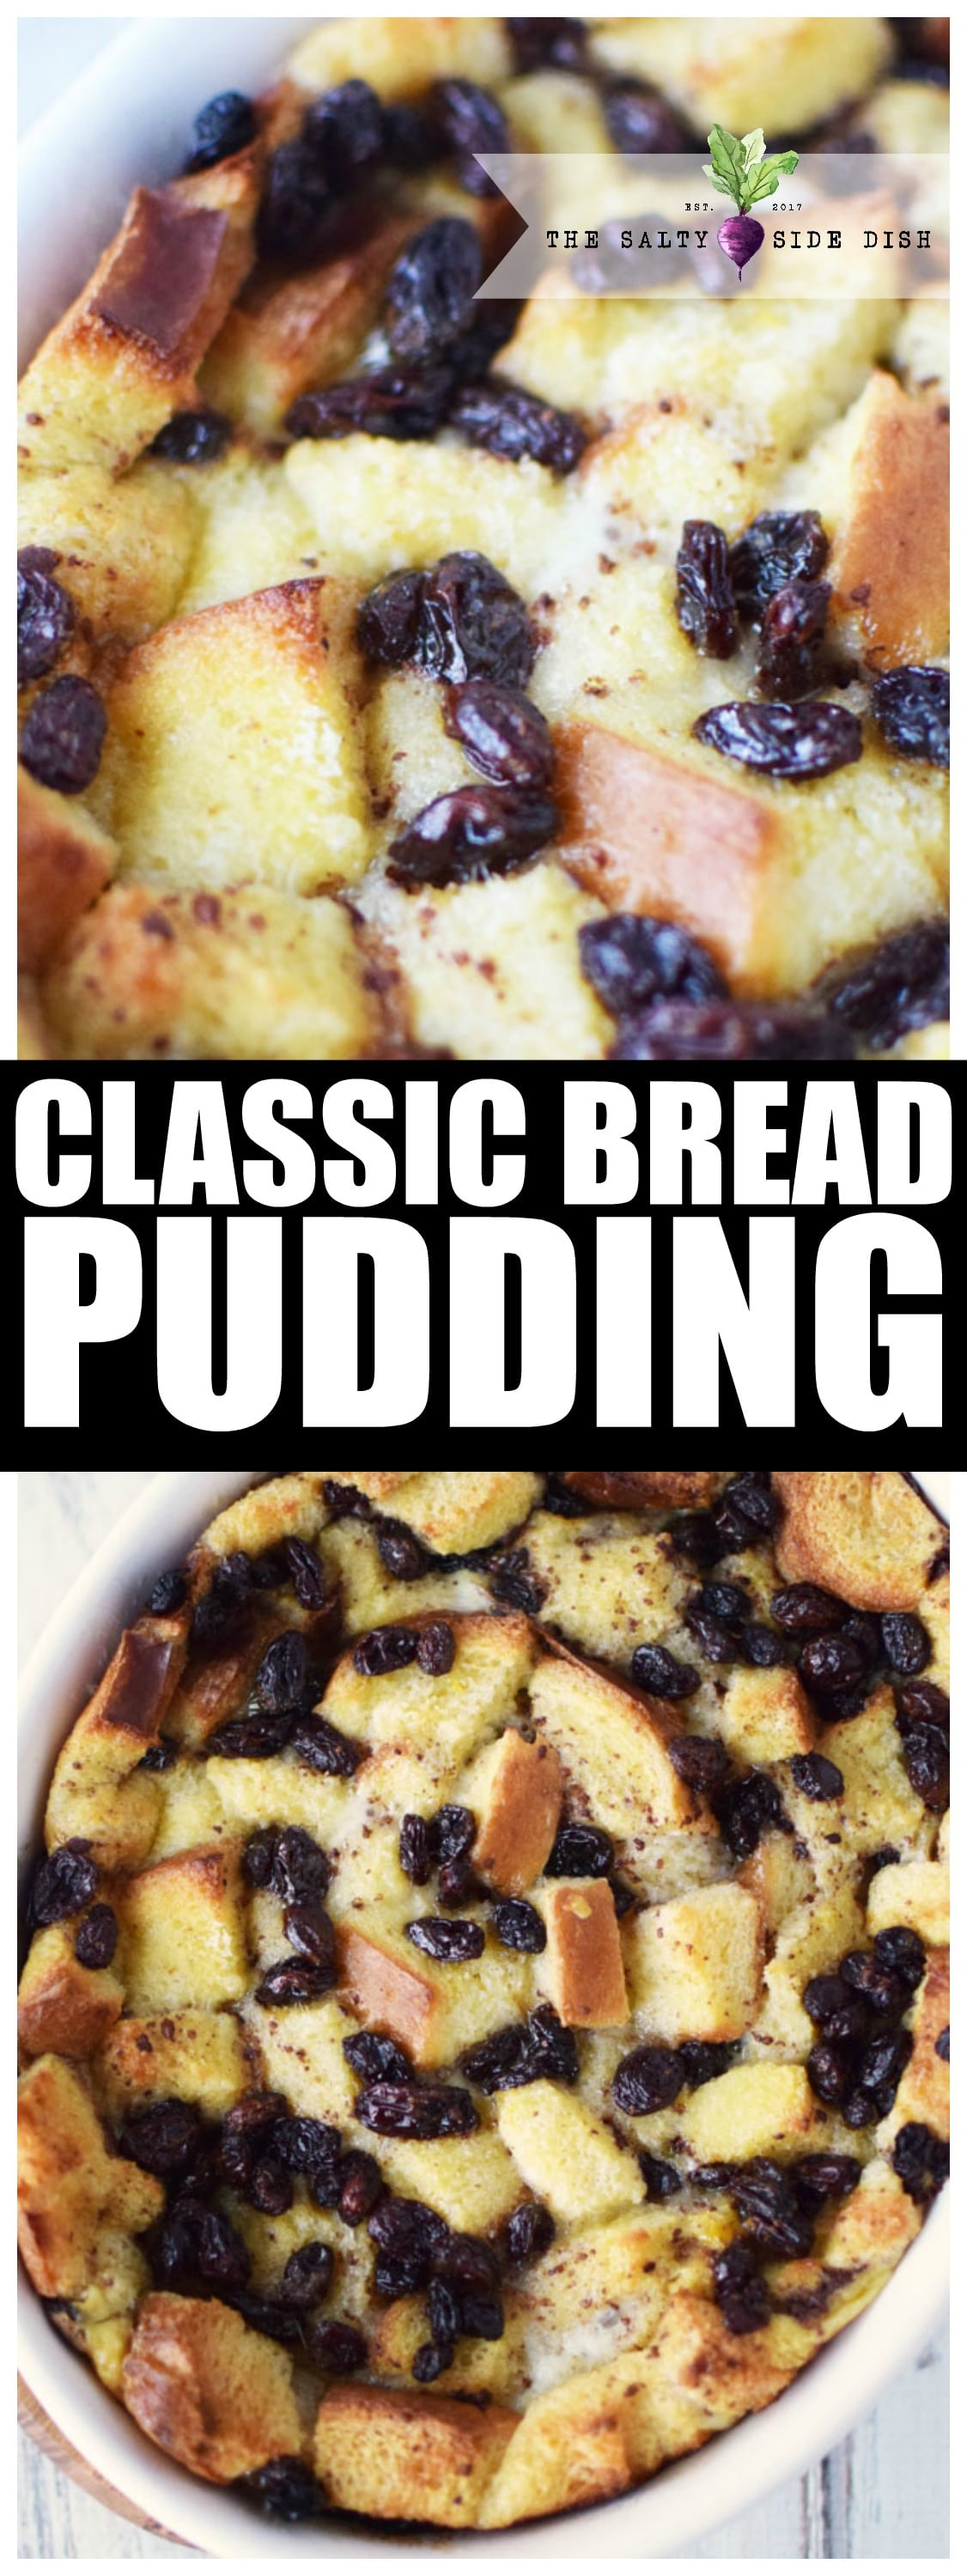 Bread Pudding Recipe | Classic Raisin Bread Pudding for a Southern Dessert everyone will want more of! #breadpudding #pudding #southerncooking #recipe #dessert #fallfavorites #fall #thanksgiving #christmas